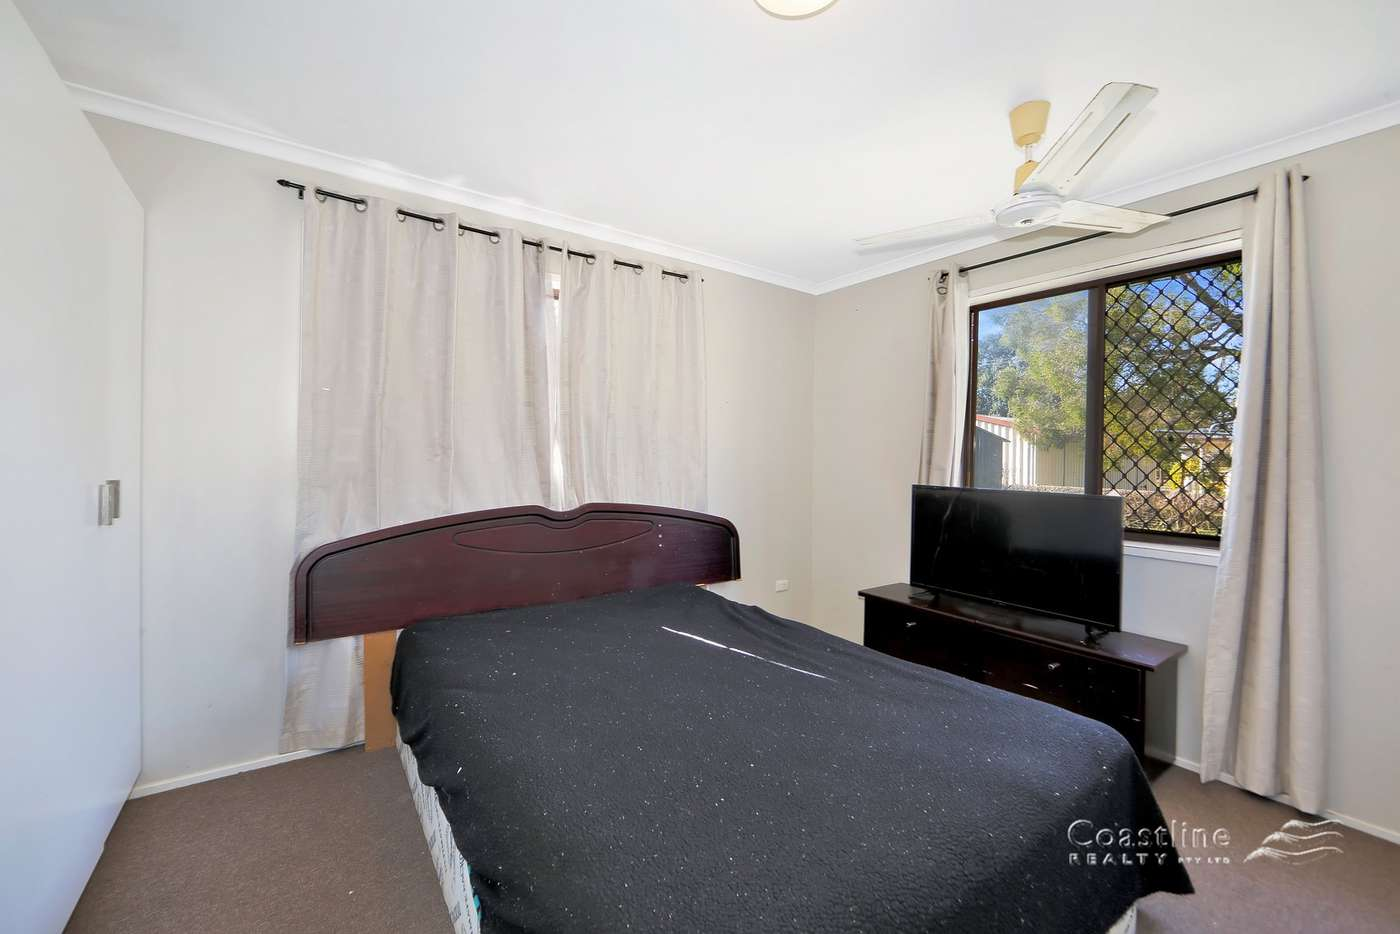 Seventh view of Homely house listing, 11 Newitt Drive, Bundaberg South QLD 4670